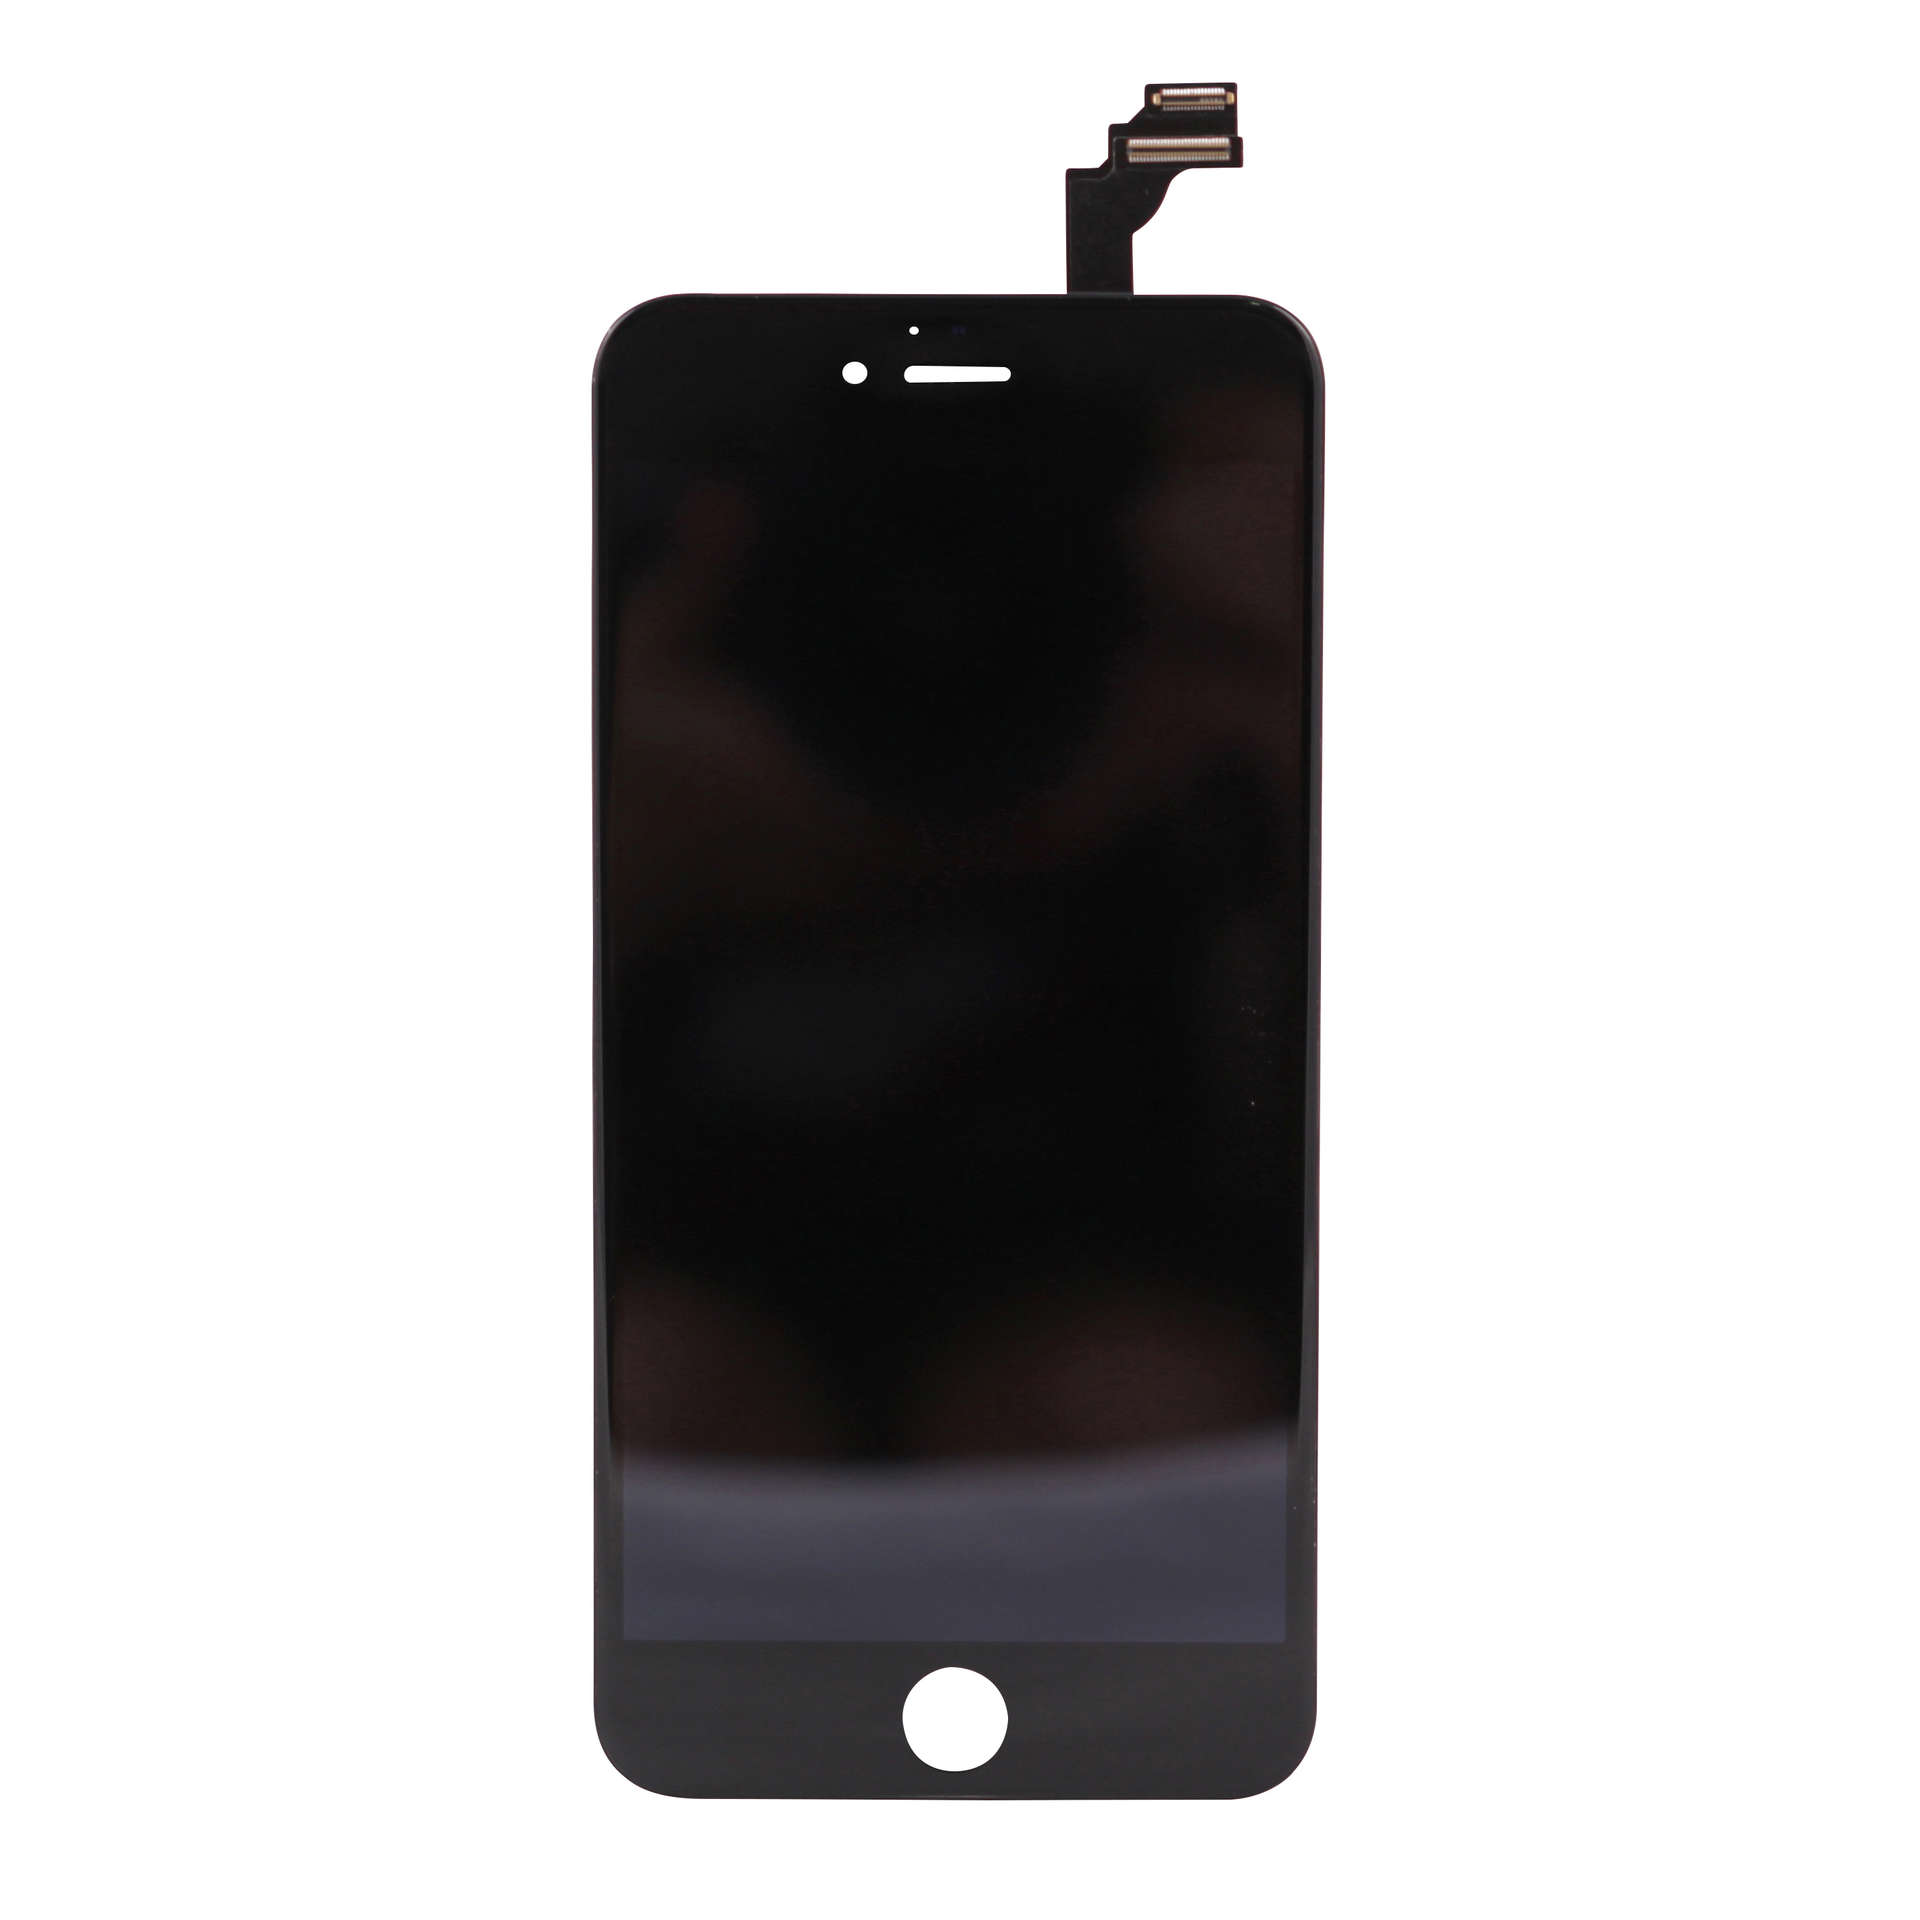 iPhone SE Replacement Screen (Black)